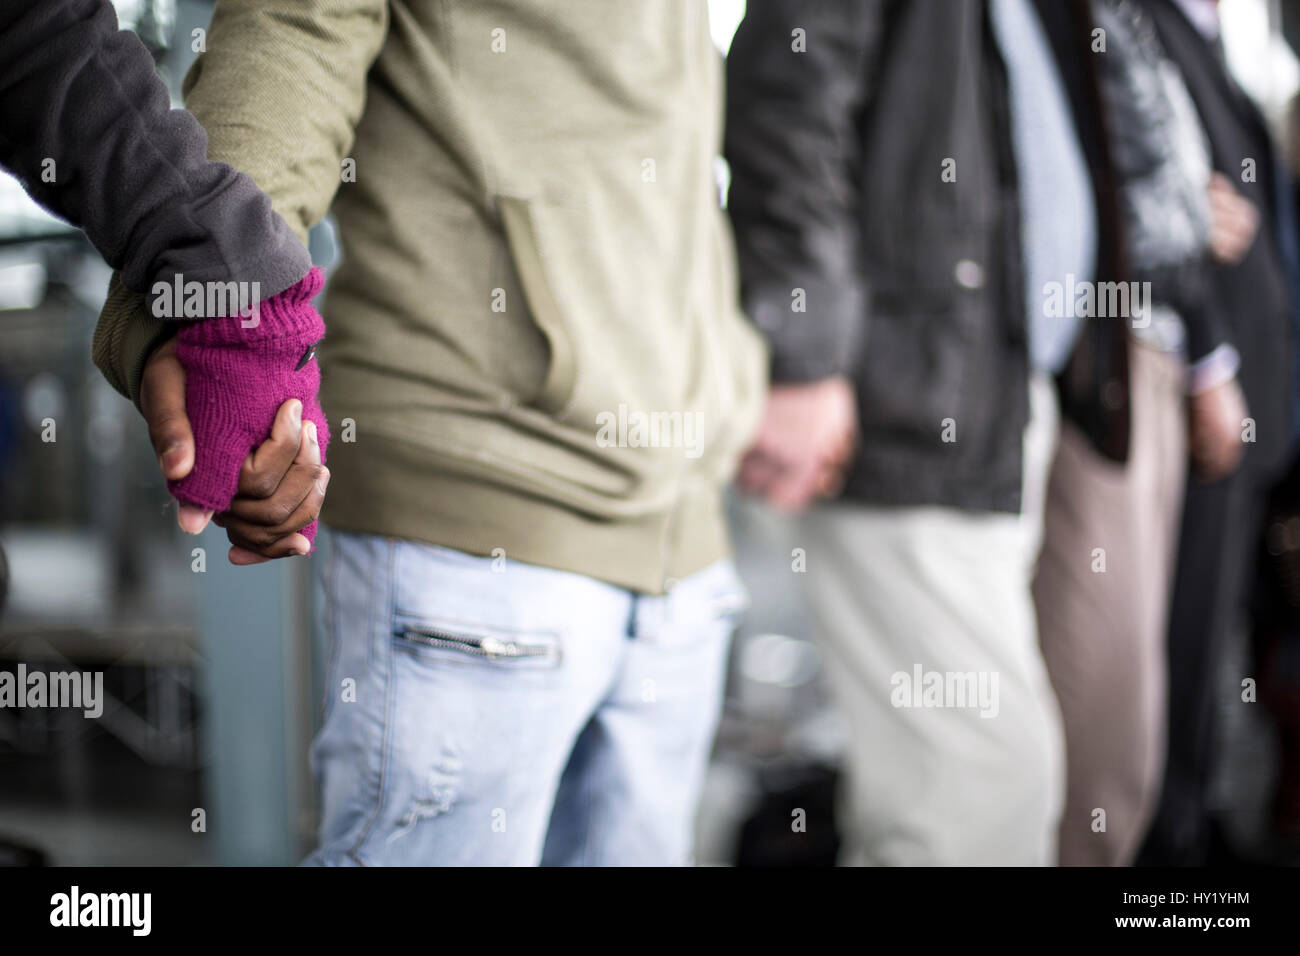 UNITED KINGDOM, WALES. March 17 2017. Citizens of Cardiff joined hands as a symbolic gesture of connectedness and - Stock Image